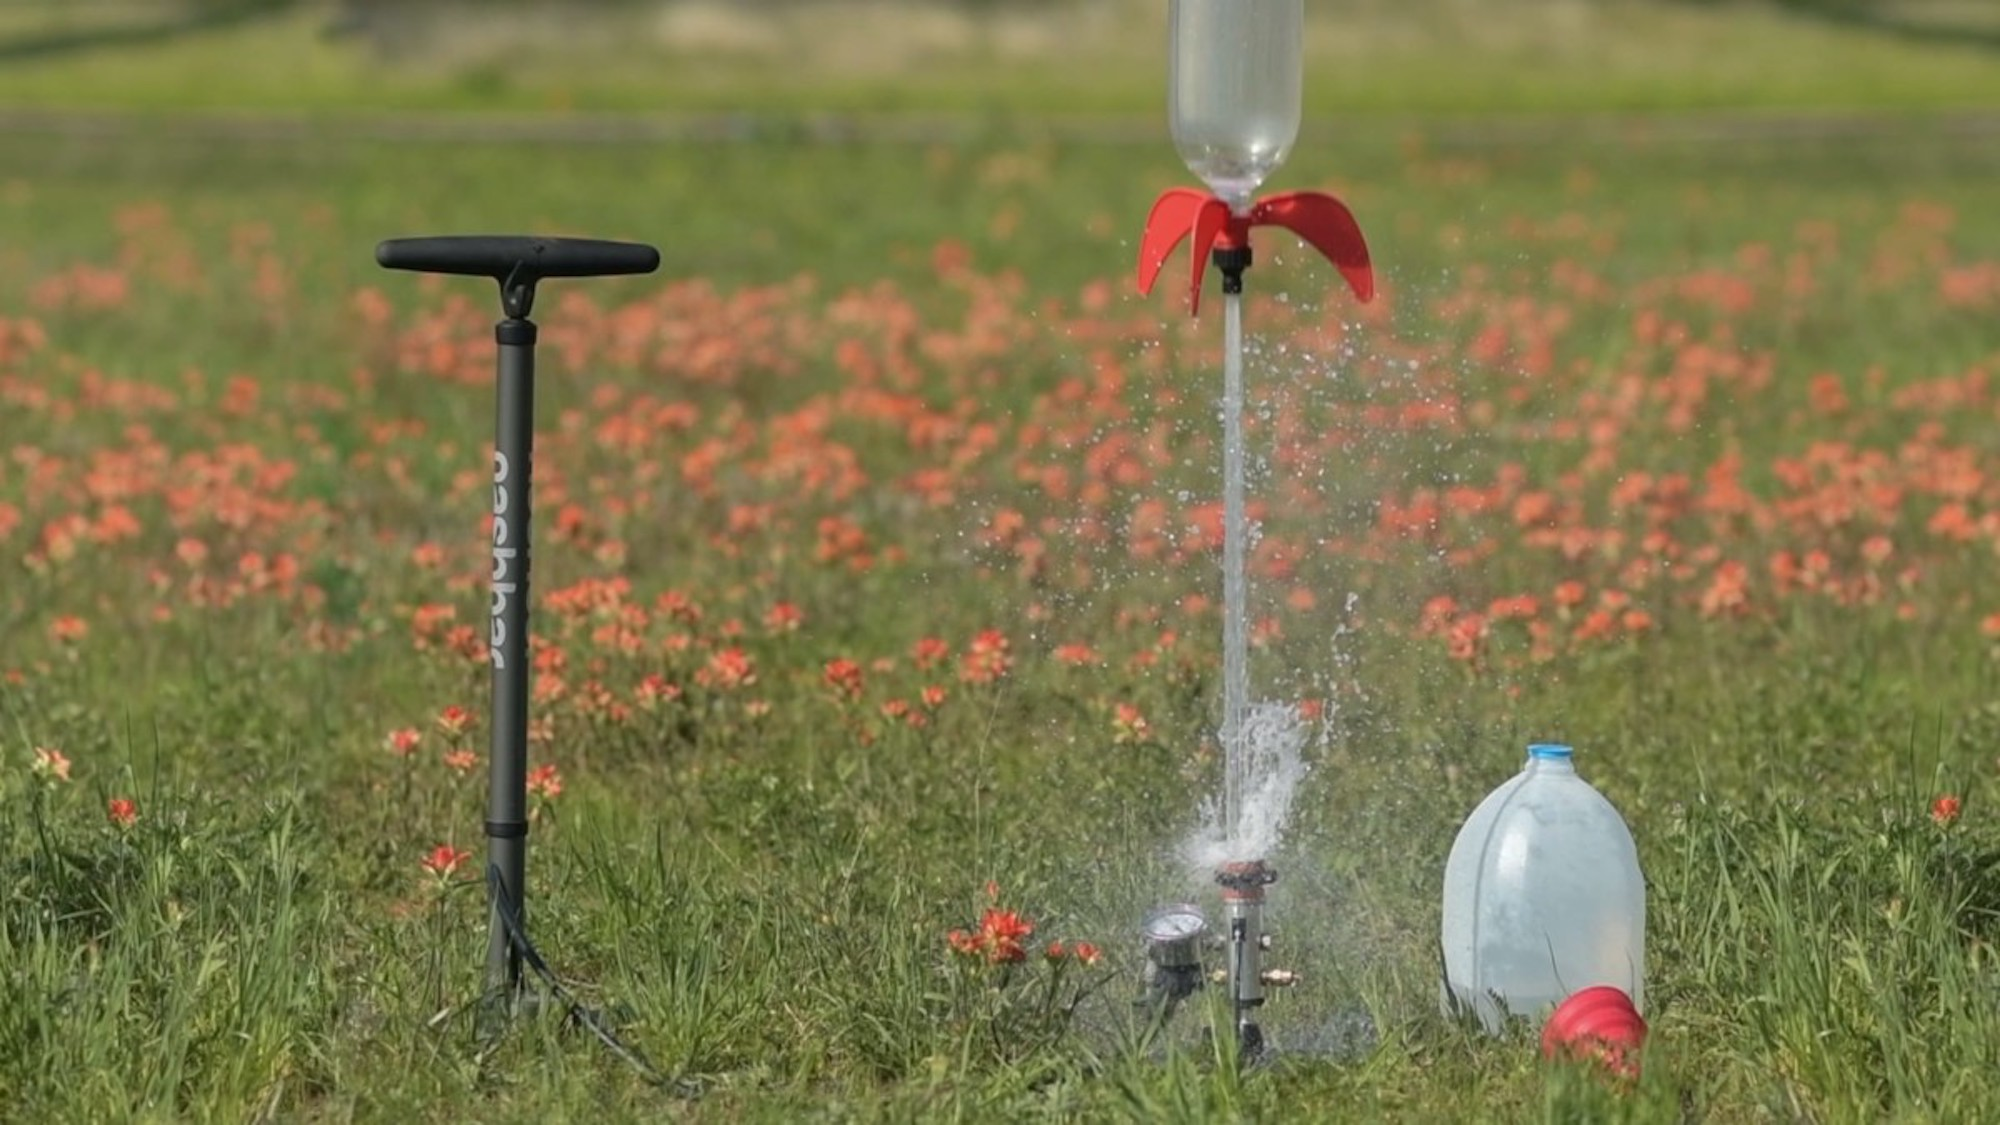 This cool water rocket launcher is a great way to have fun